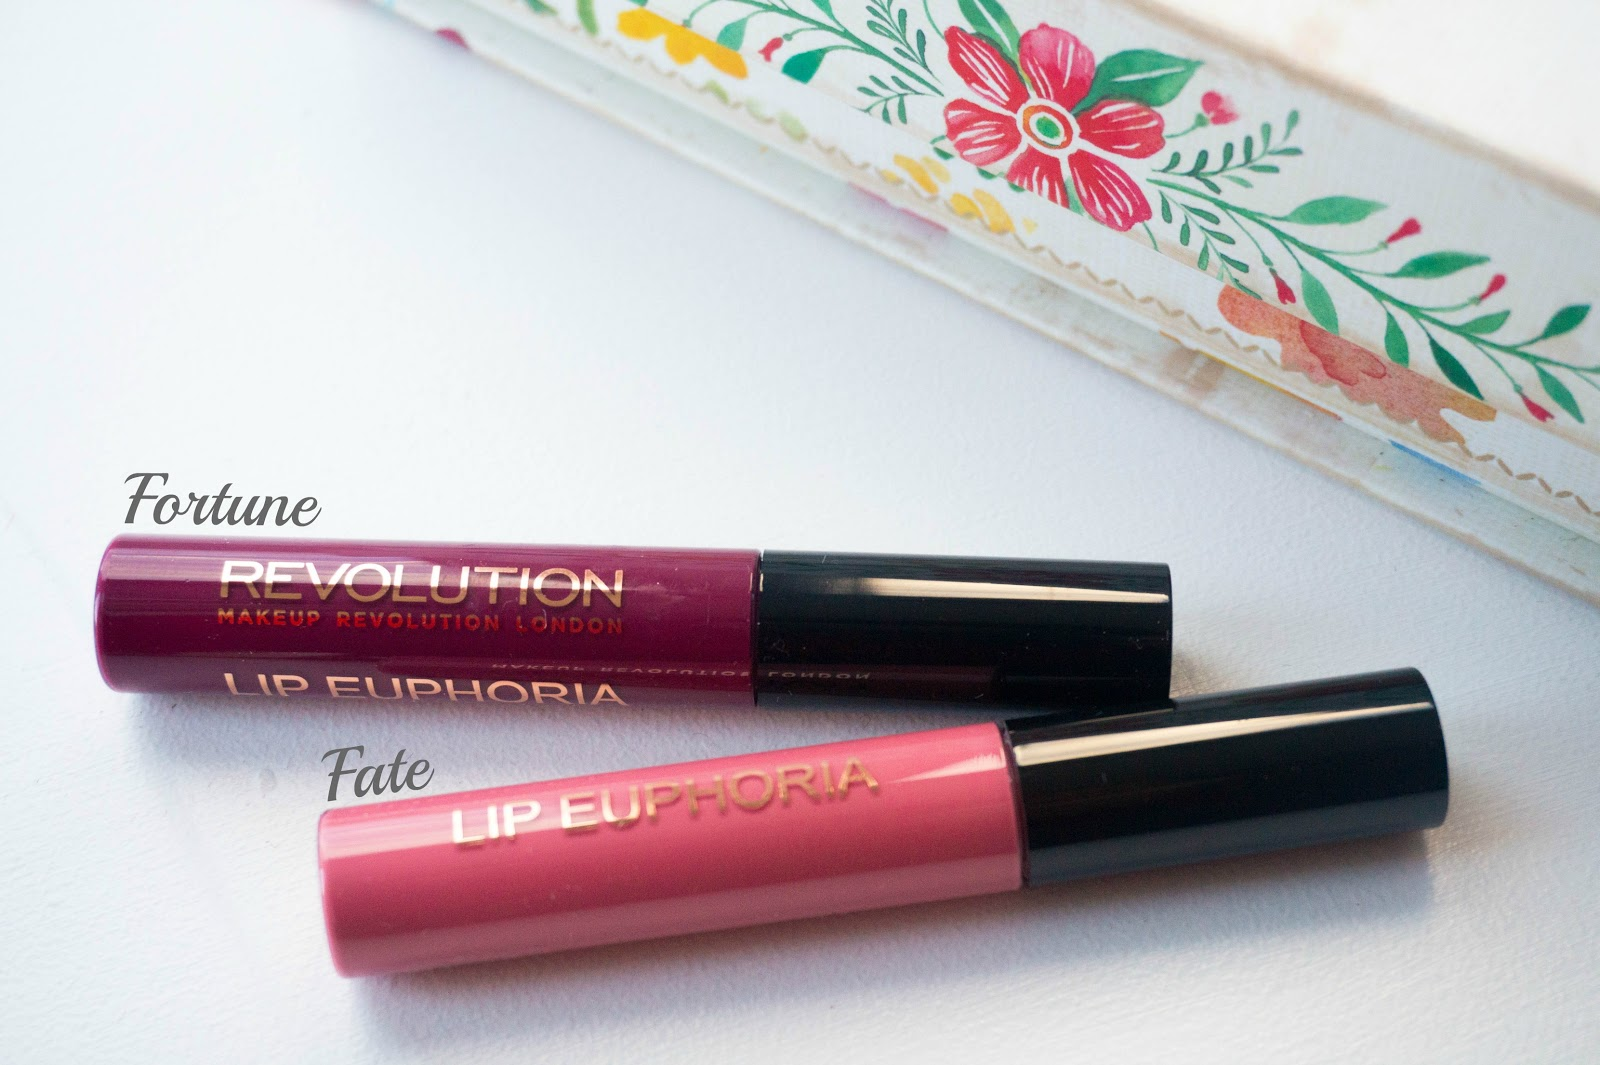 Makeup Revolution Lip Euphoria Fate, Fortune